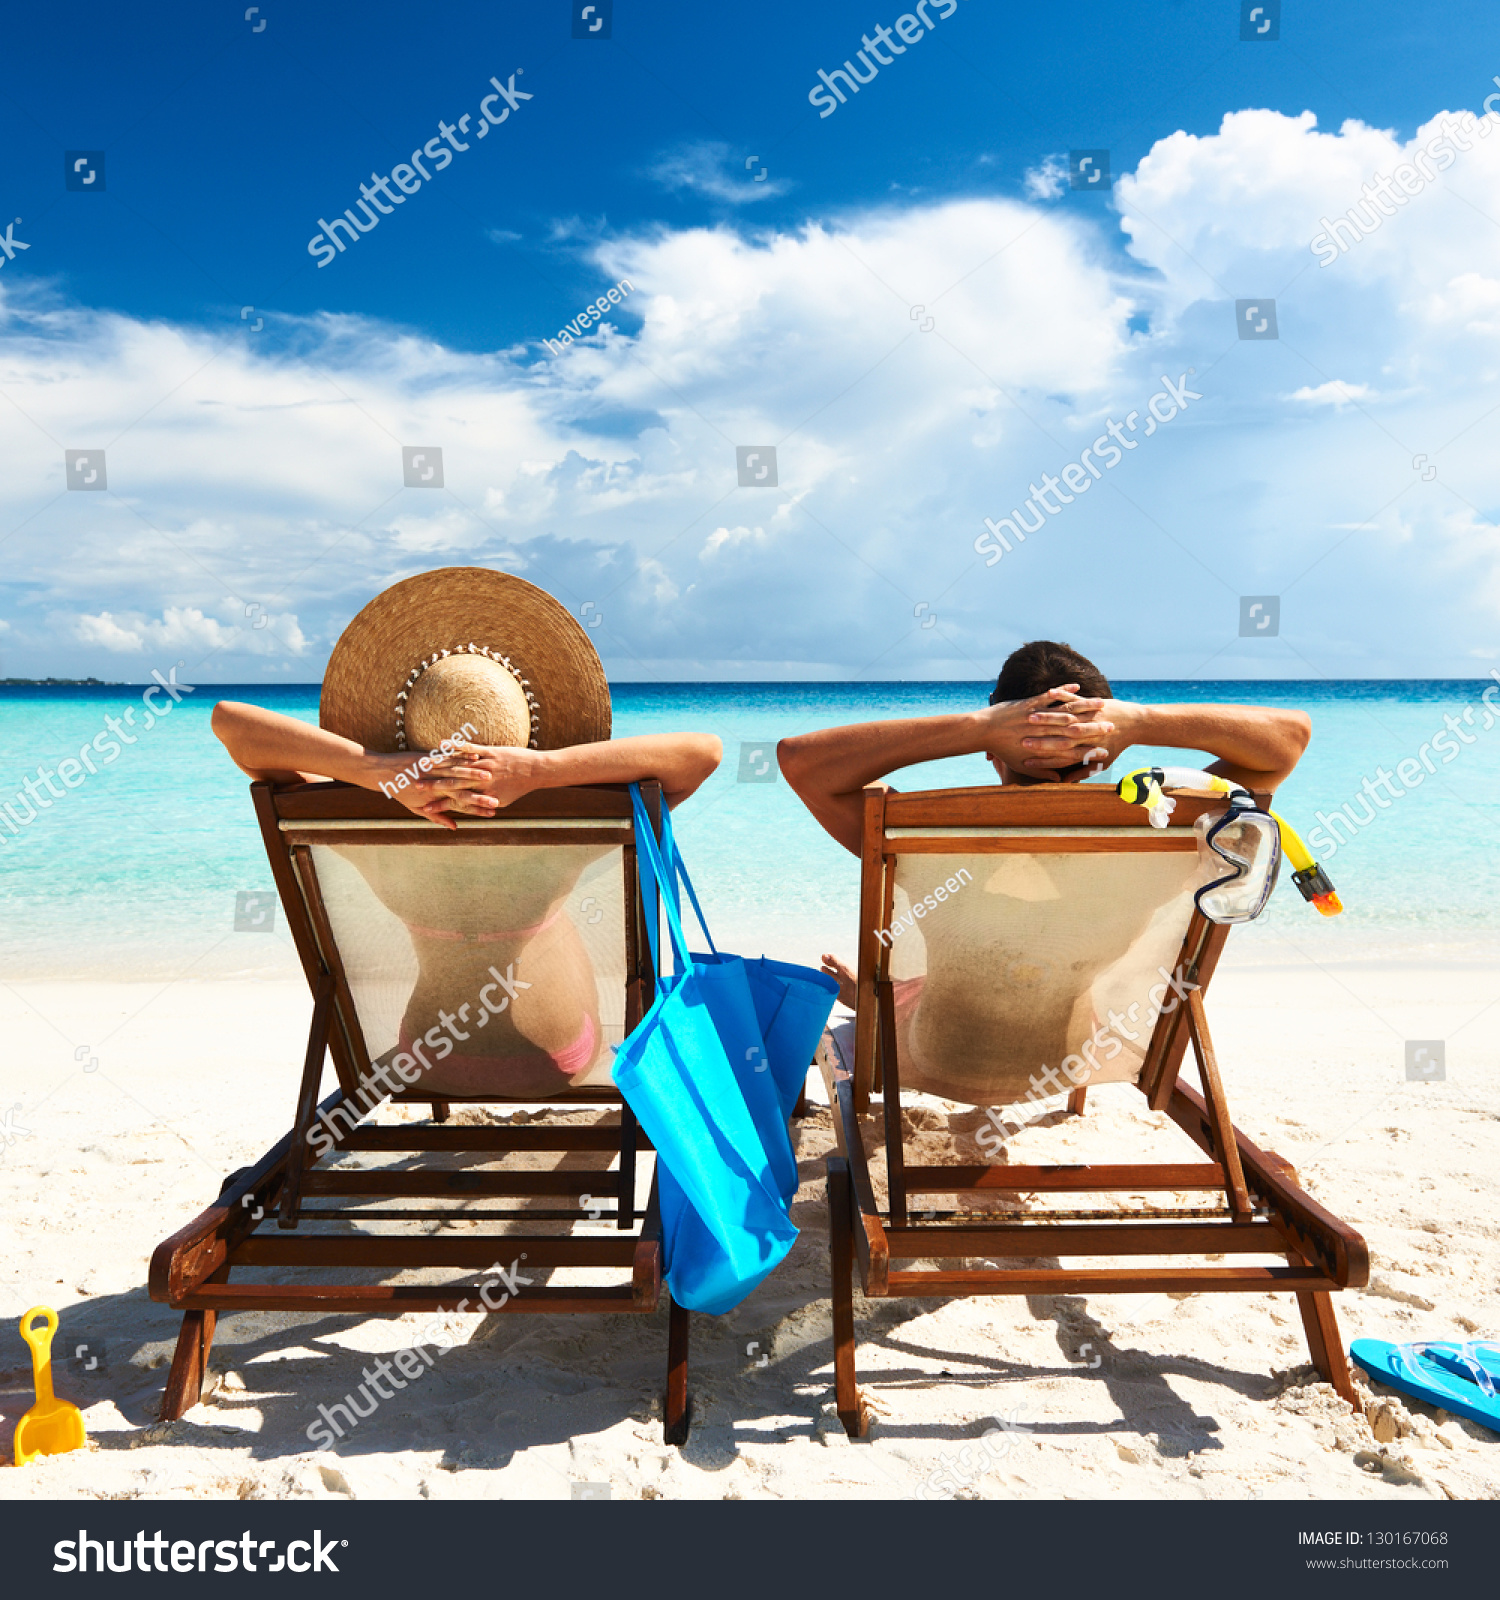 Couple on a tropical beach at Maldives #130167068